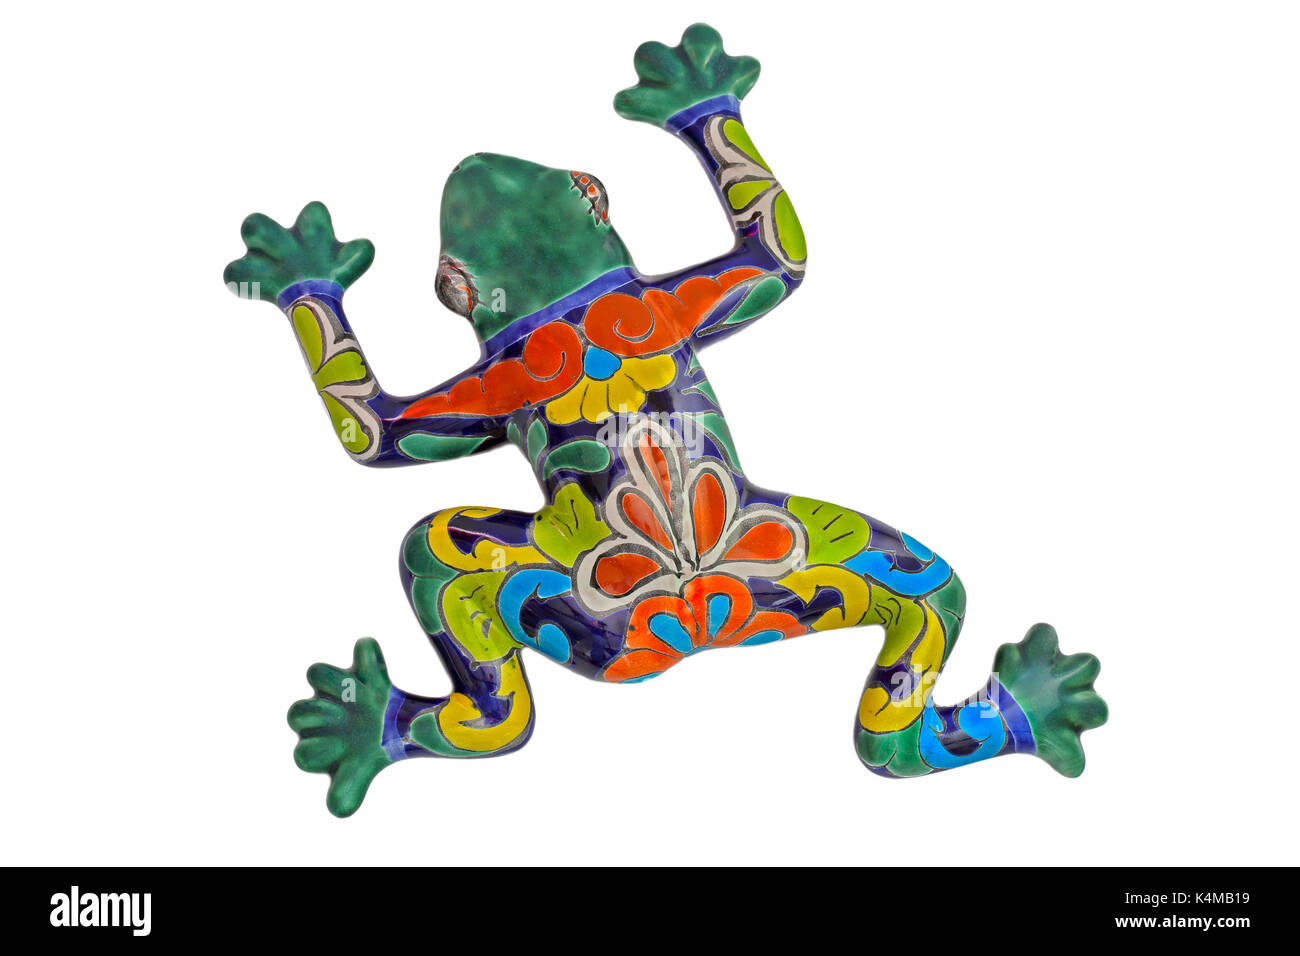 Colourful ceramic frog made in Mexico - white background - Stock Image